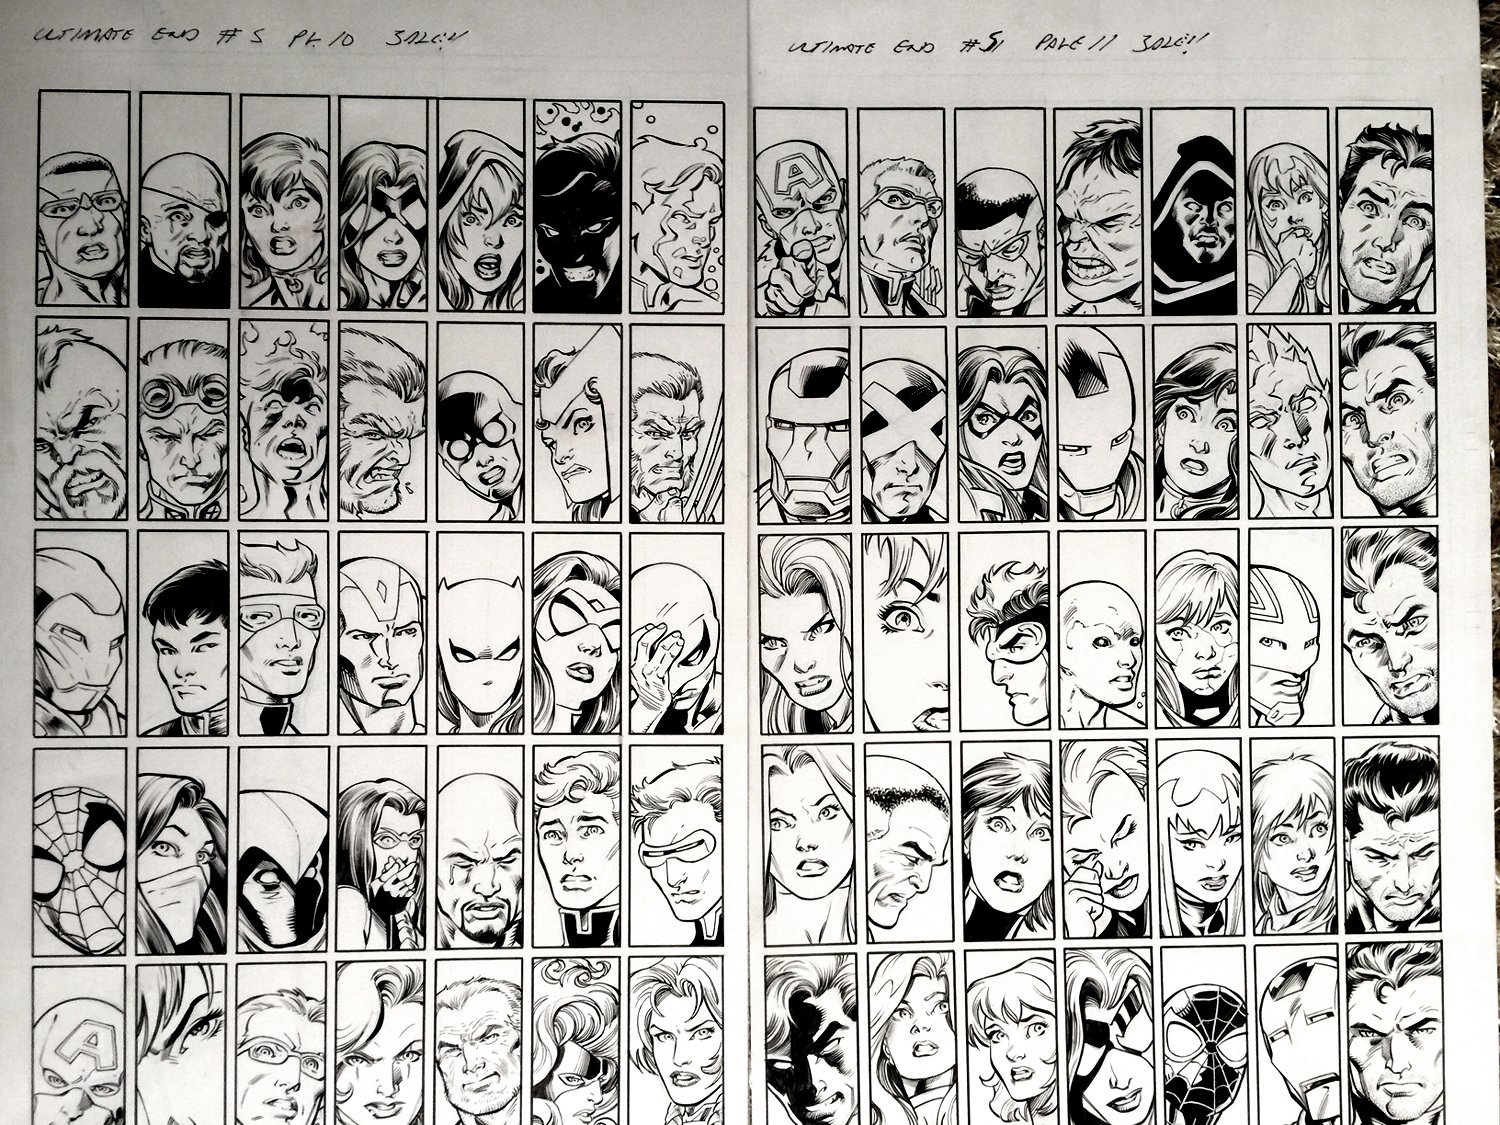 Ultimate End #5 P10-11 Double Spread (70 MARVEL HEROES DRAWN! WOW!)